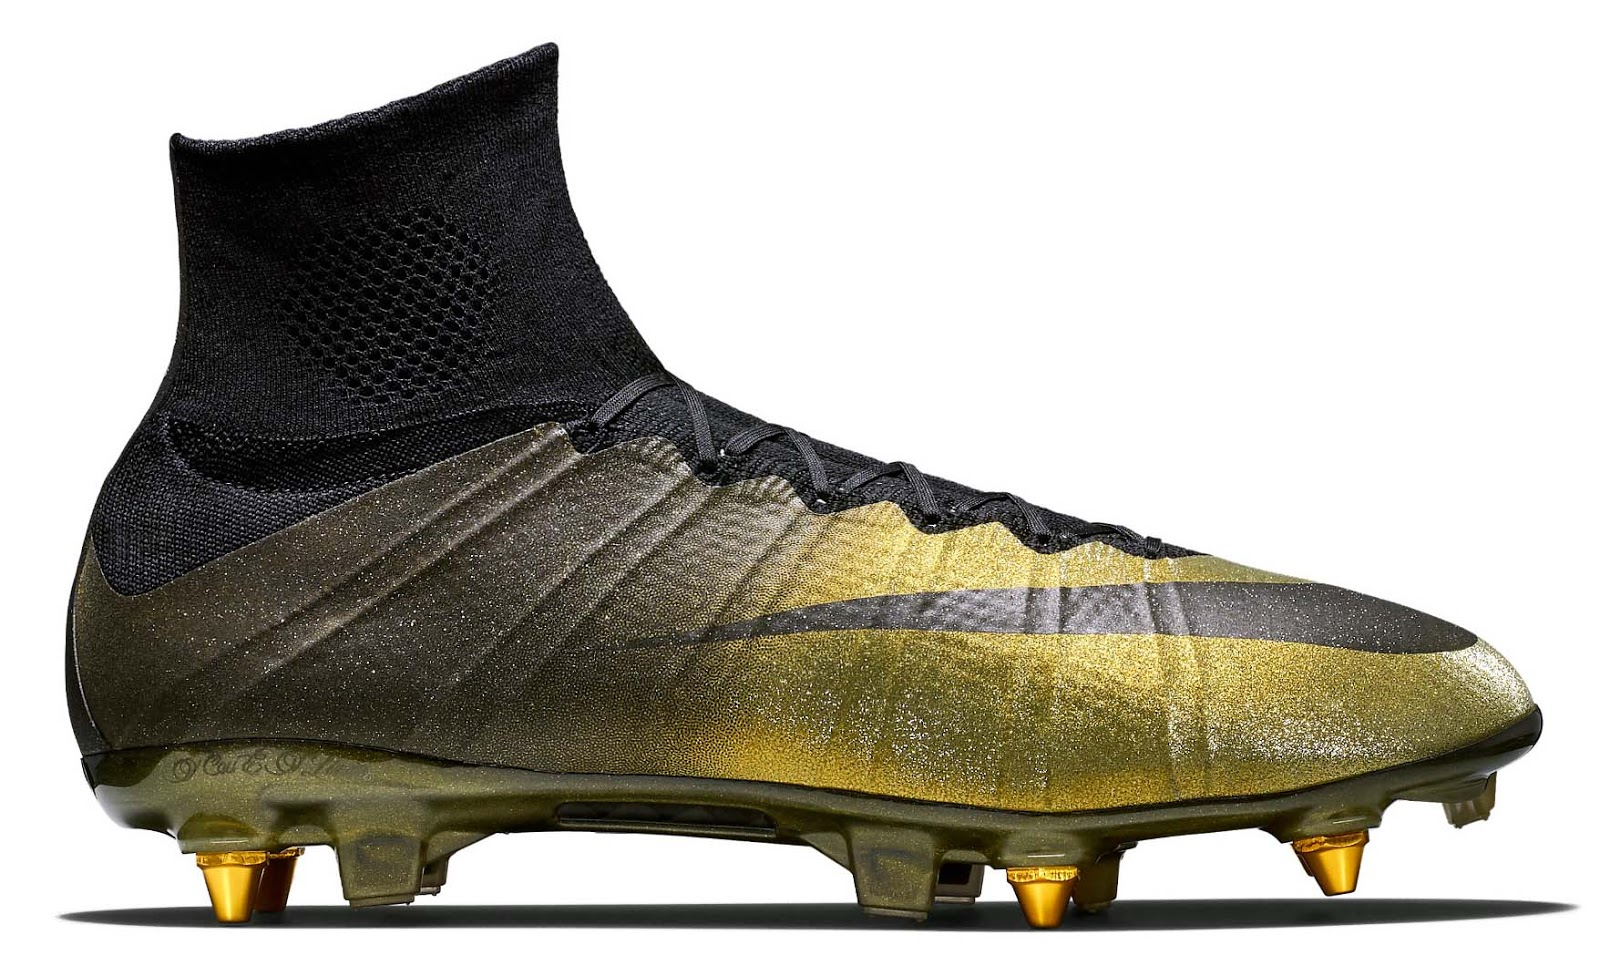 super popular d5362 f118a Nike Superfly Cr7 Rare Gold Price Cr7 Superfly 4 | Обекти